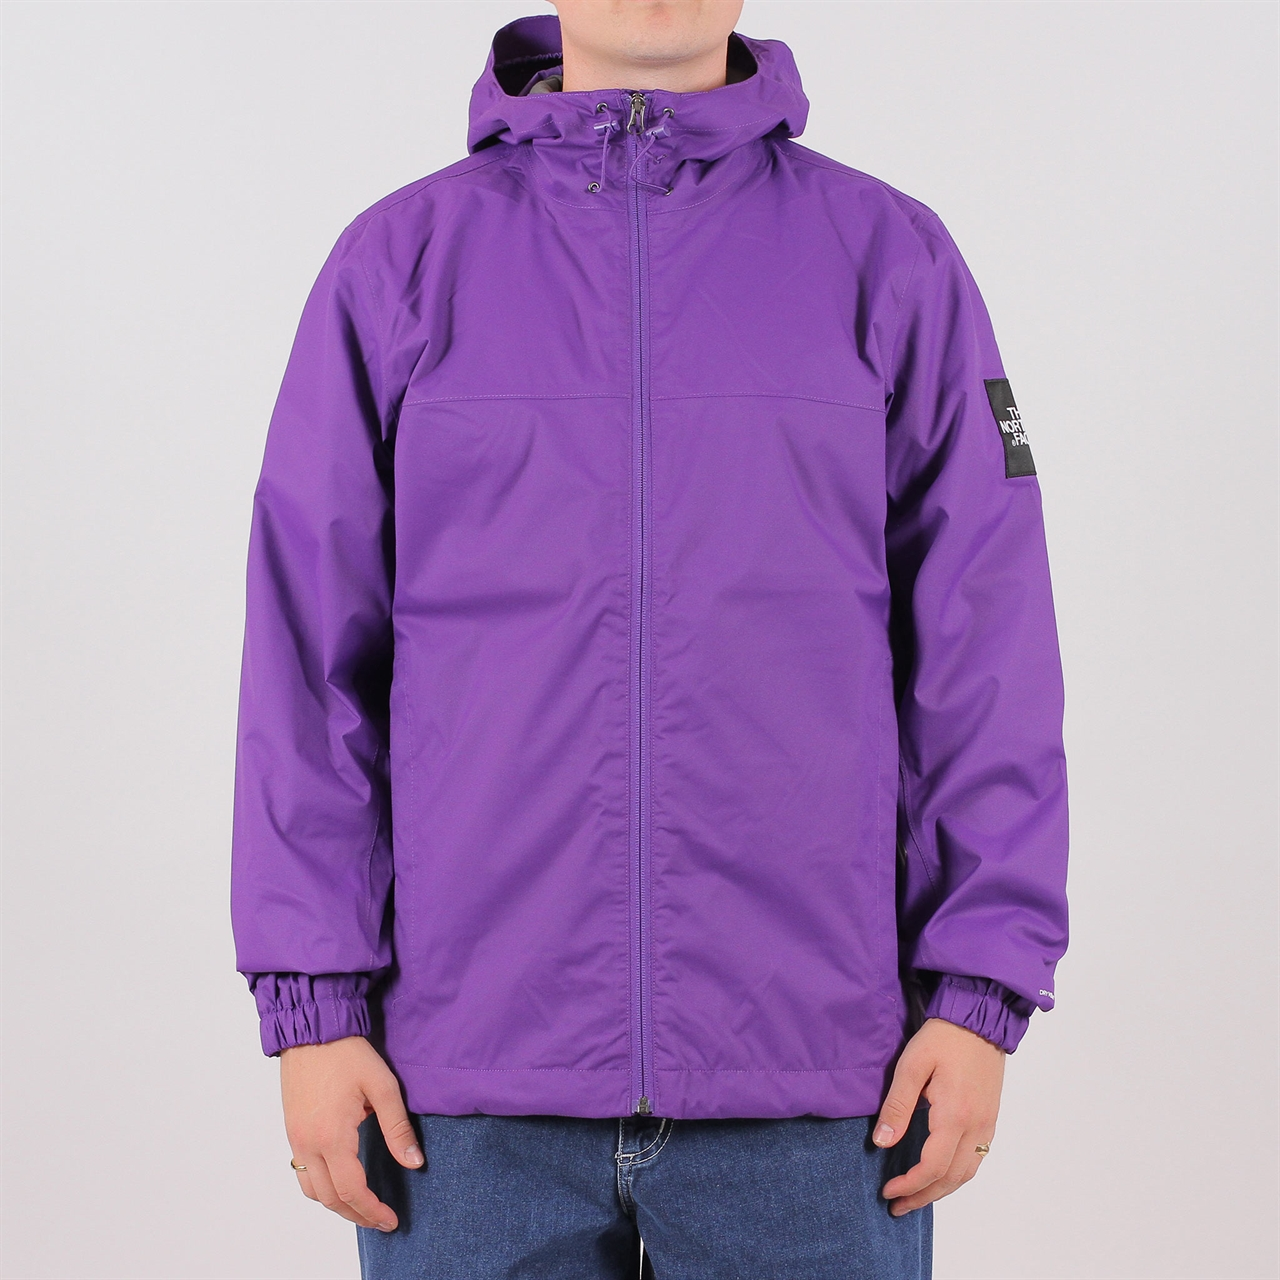 8a04b7c600a The North Face Mountain Quest Jacket (T0CR3Q3YR) - Shelta